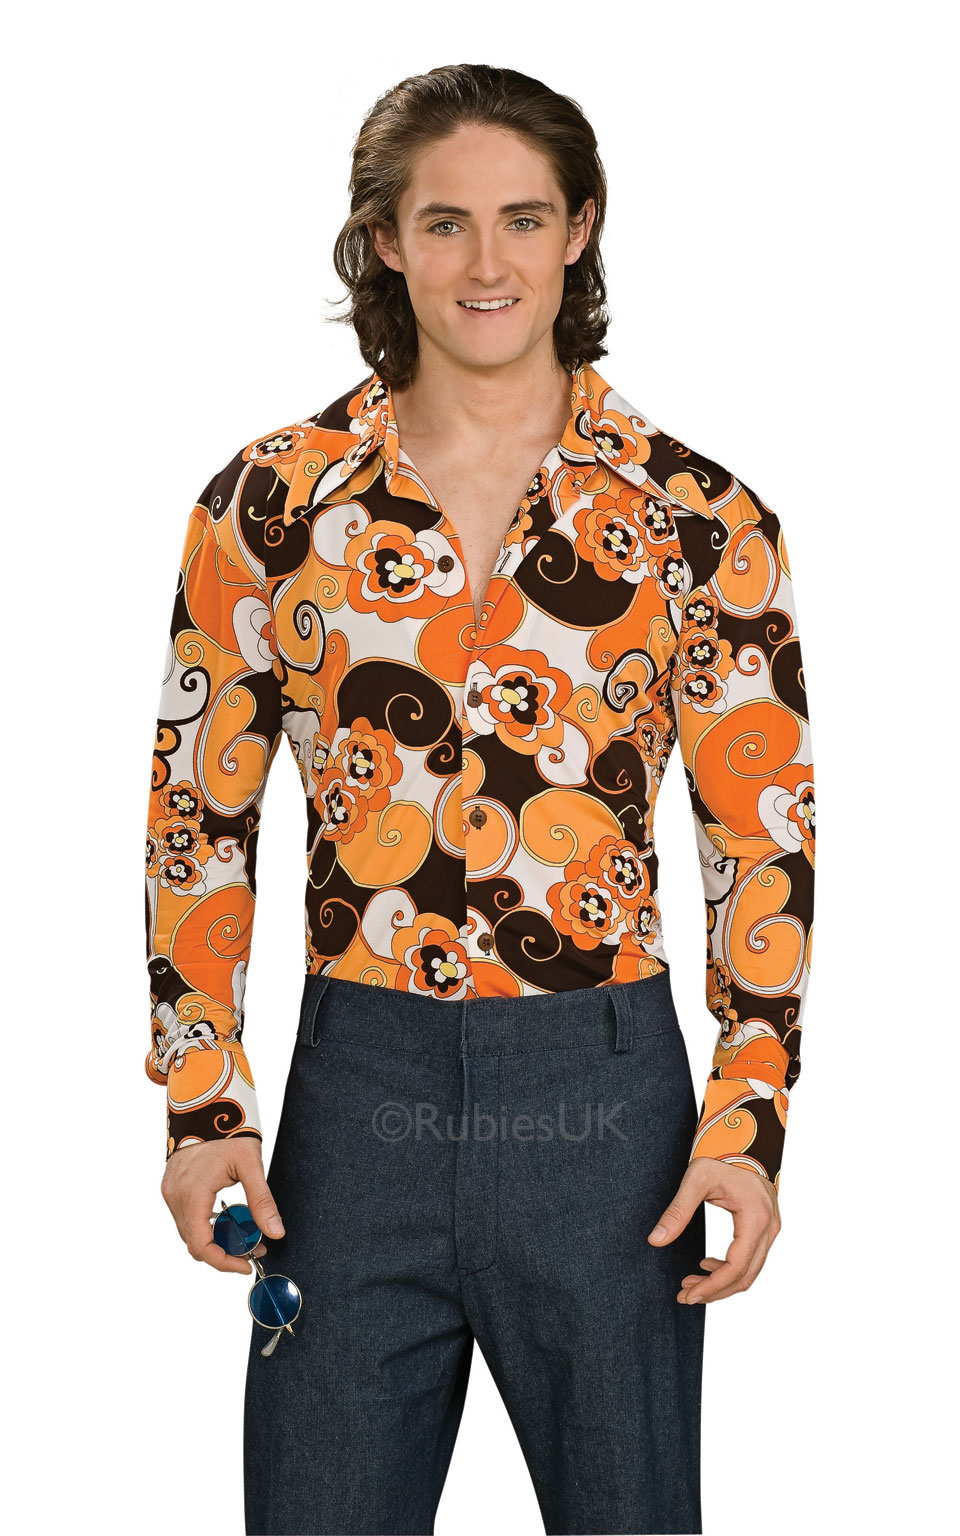 Groovy Shirt - Orange